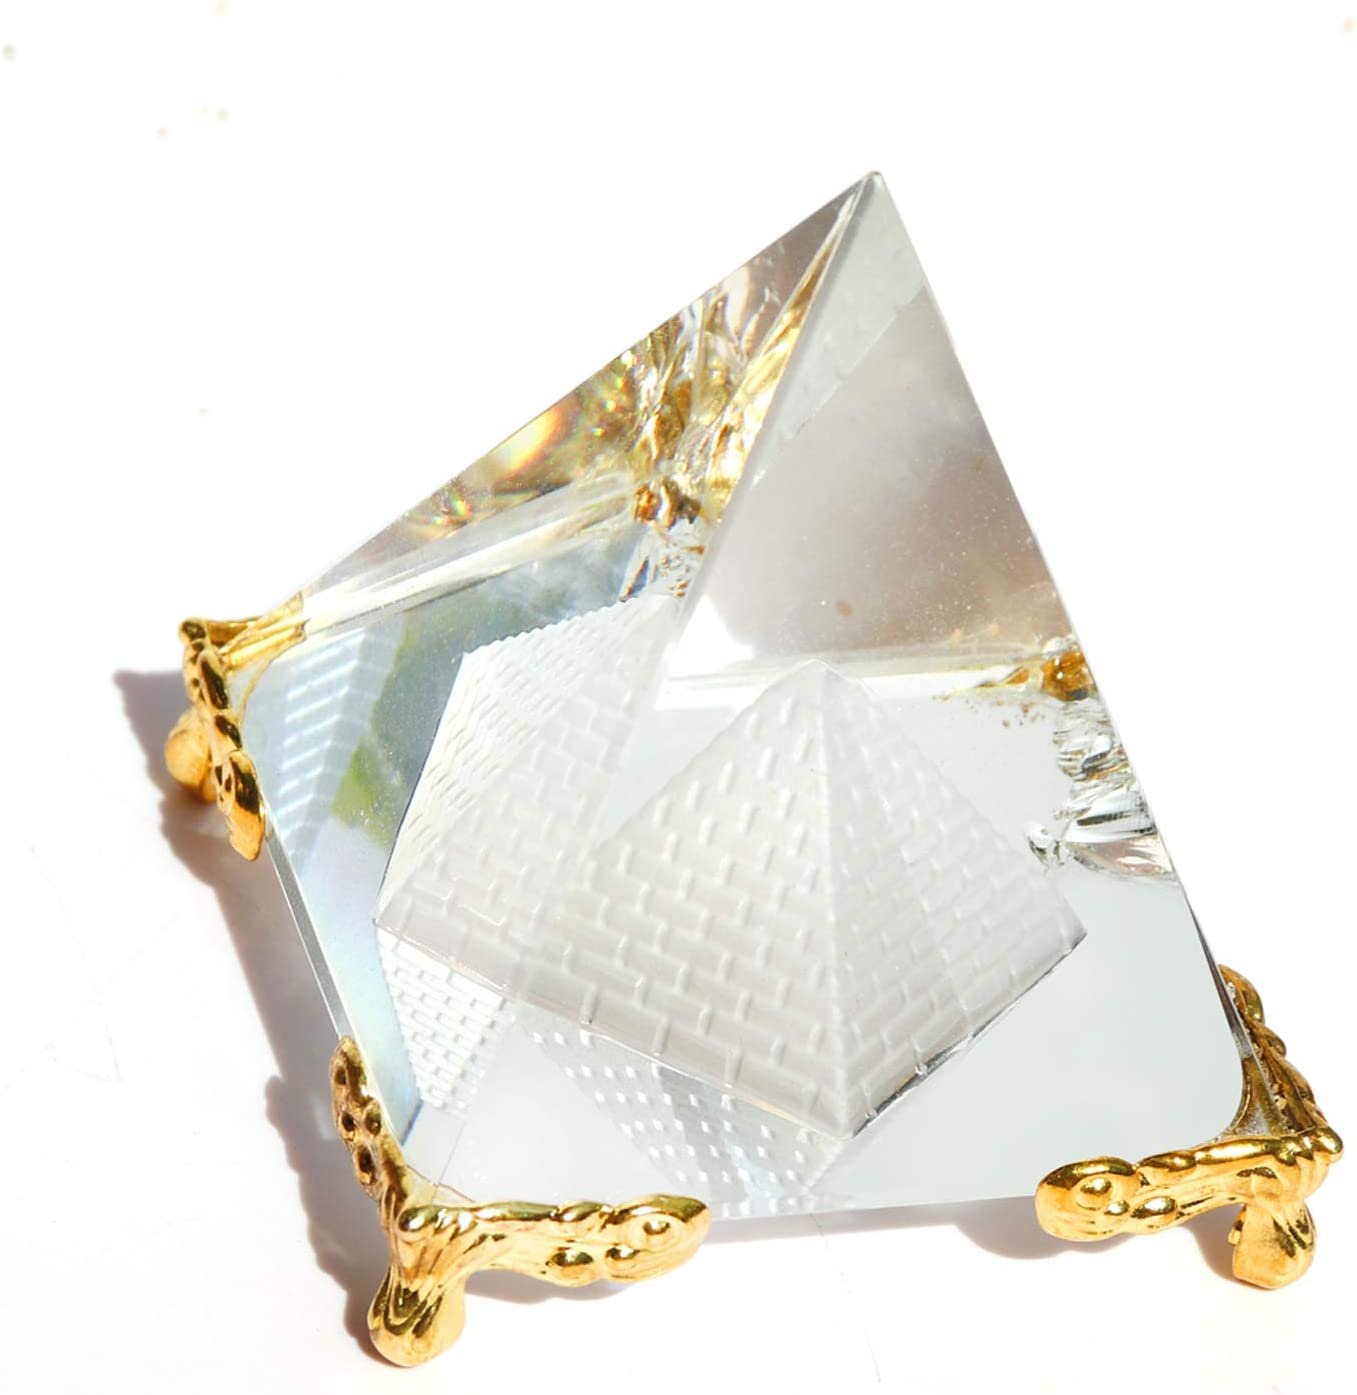 Together-life Crystal Pyramid Prism, Feng Shui Crafts Meditation Crystal with Gold Stand for Home Office Art Decor, Pyramids Gift, Stand for Prosperity, Positive Energy and Good Luck